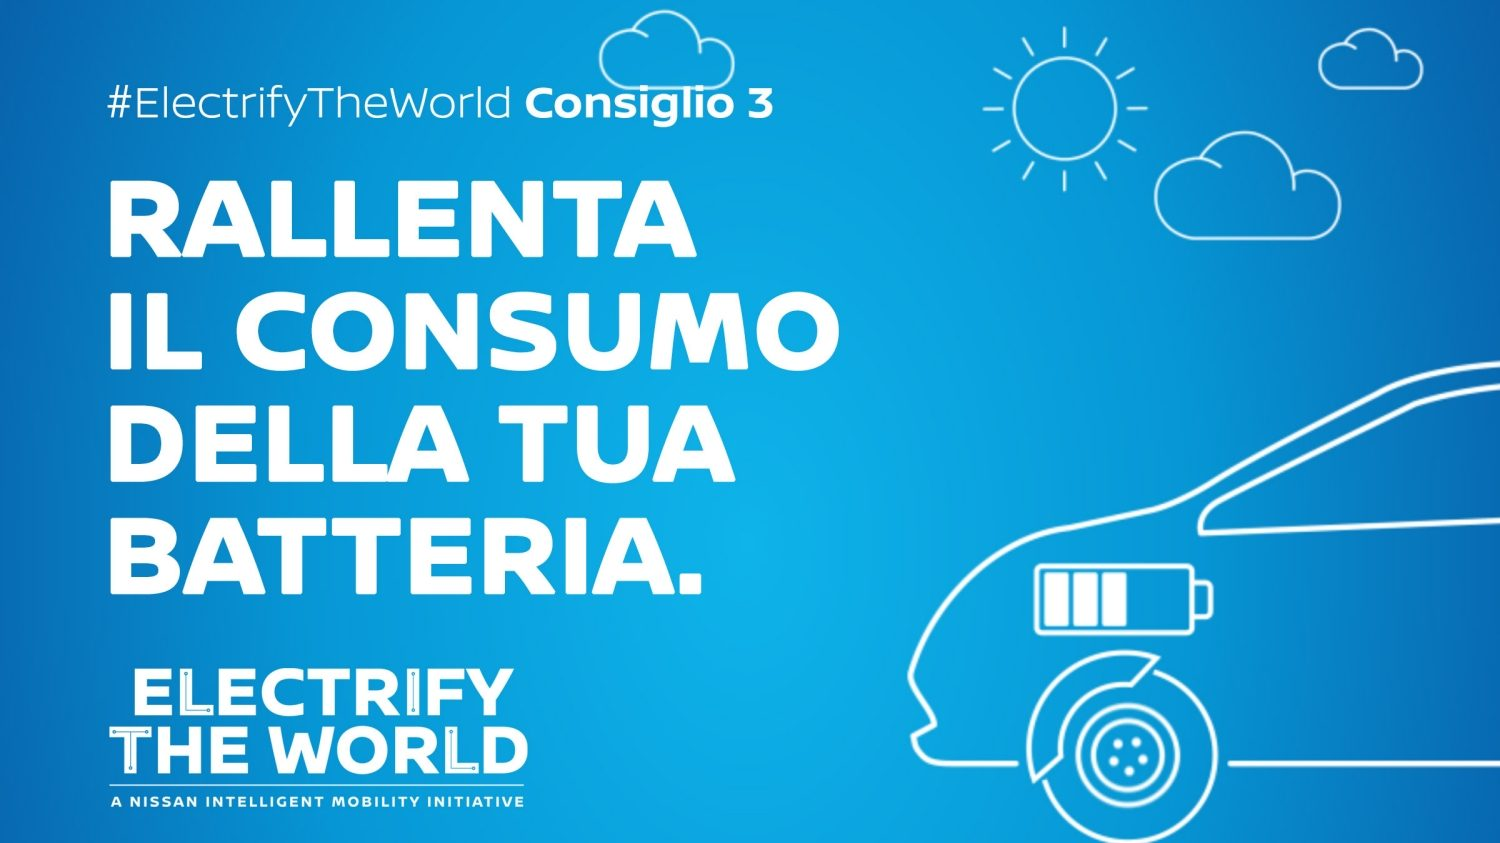 Electrify the World – Rallenta i consumi